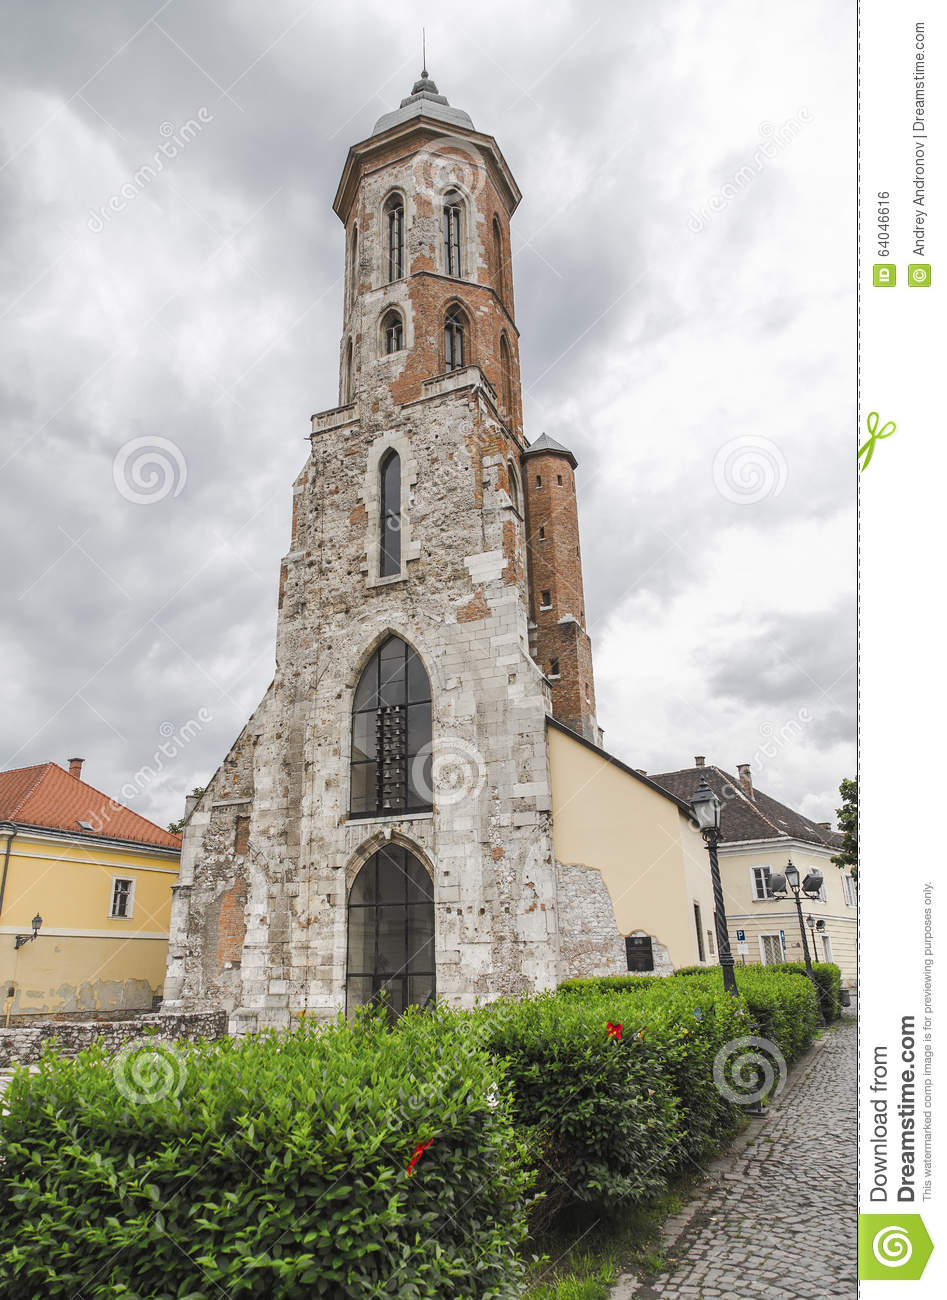 Tower Church of Mary Magdalene